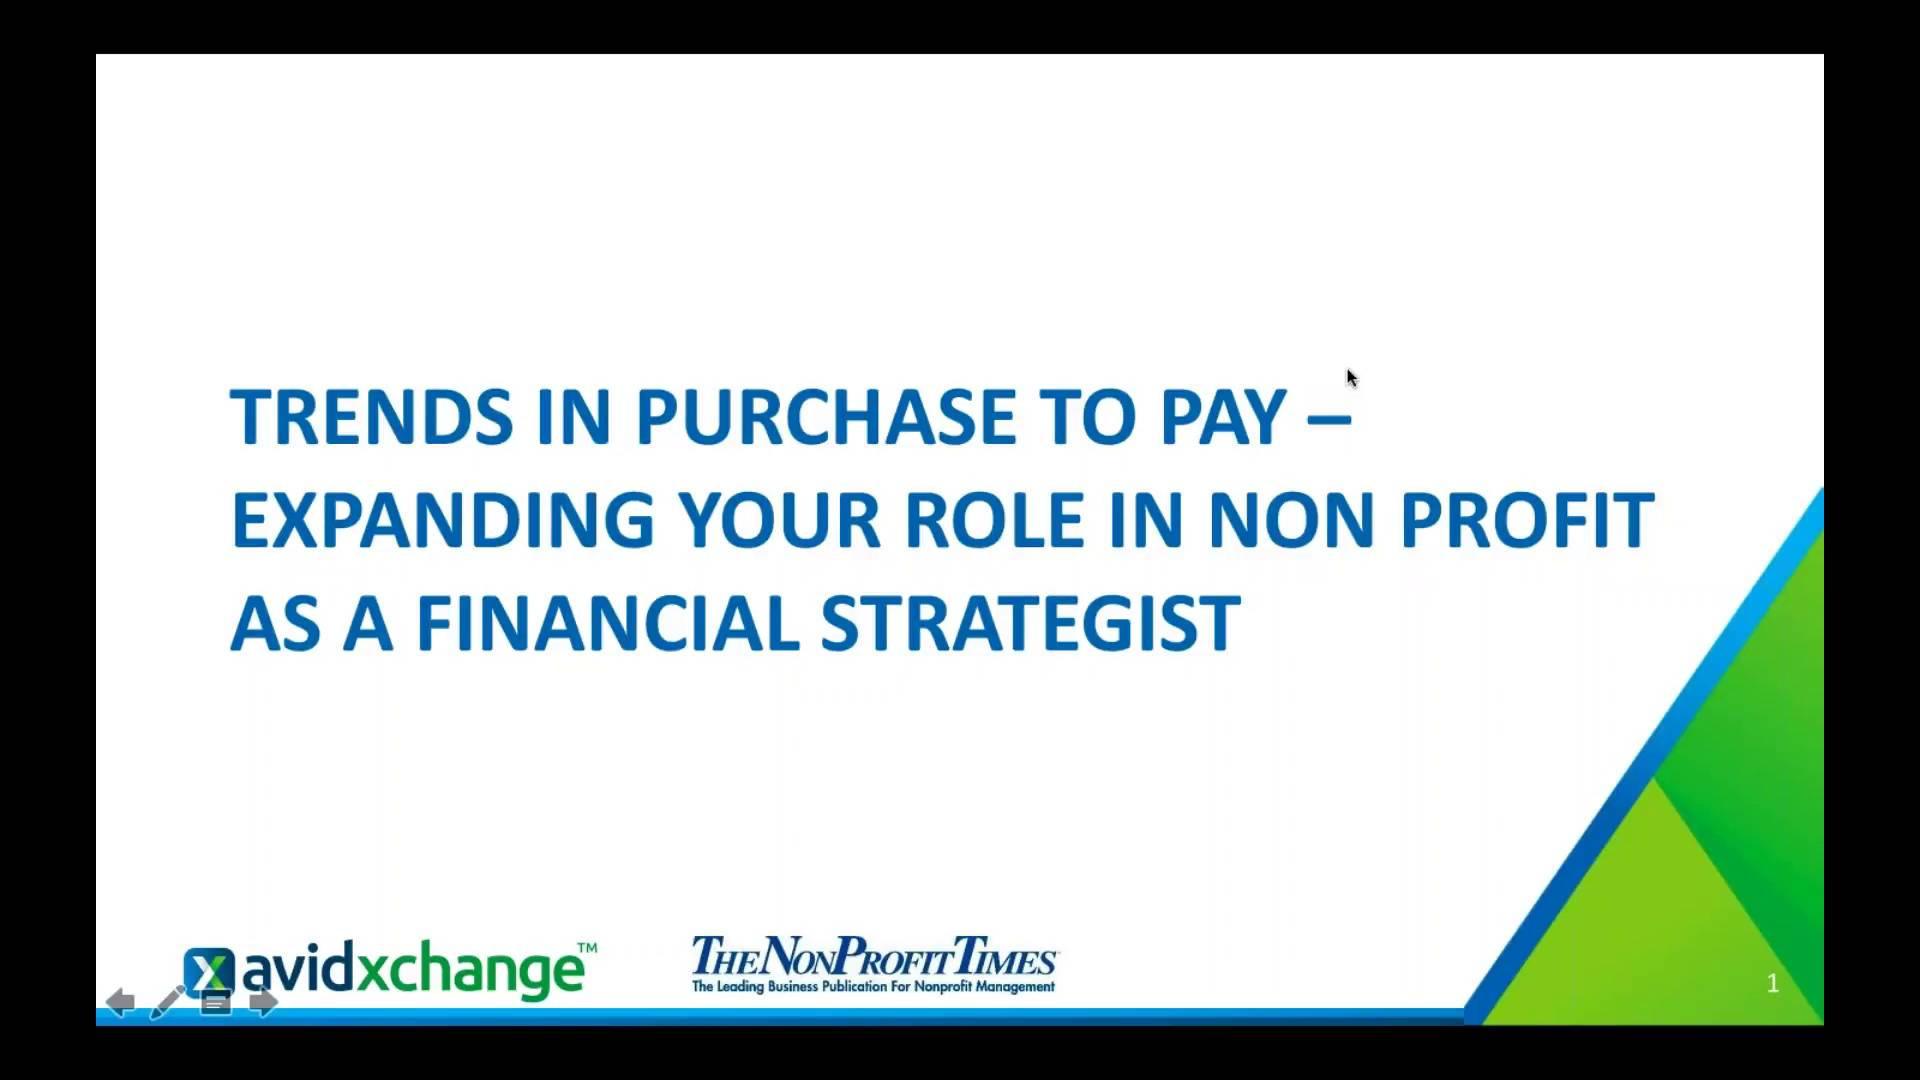 Trends in purchase to pay for non profit expanding your role as trends in purchase to pay for non profit expanding your role as a financial strategist avidxchange fandeluxe Choice Image